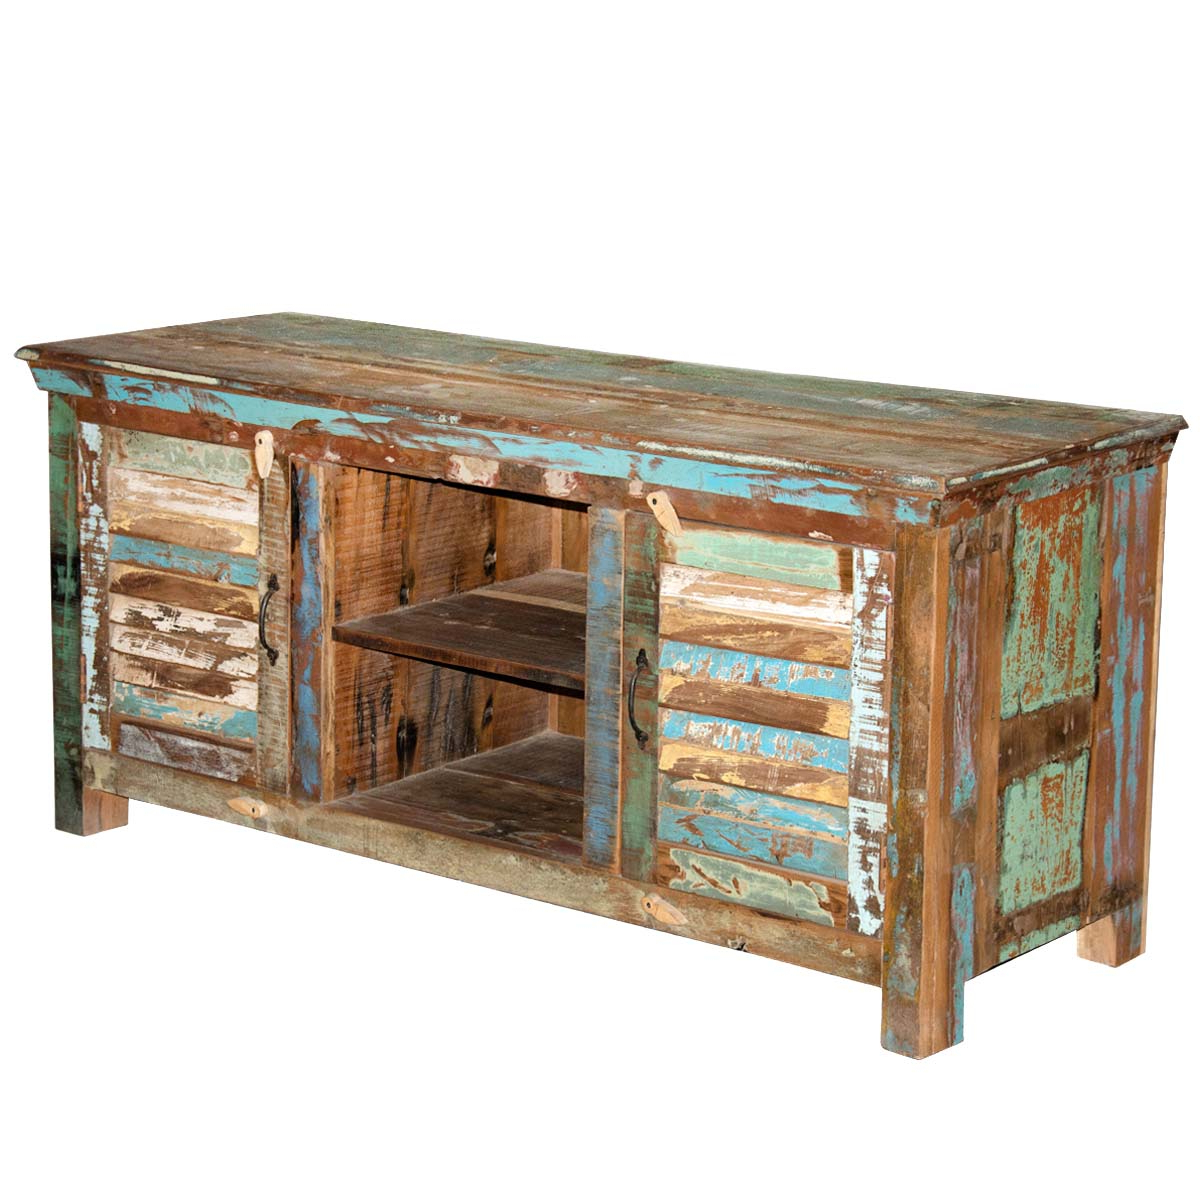 Most Popular Furniture: Rustic Shutter Doors Reclaimed Wood Tv Stand Media Inside Rustic Pine Tv Cabinets (View 19 of 20)